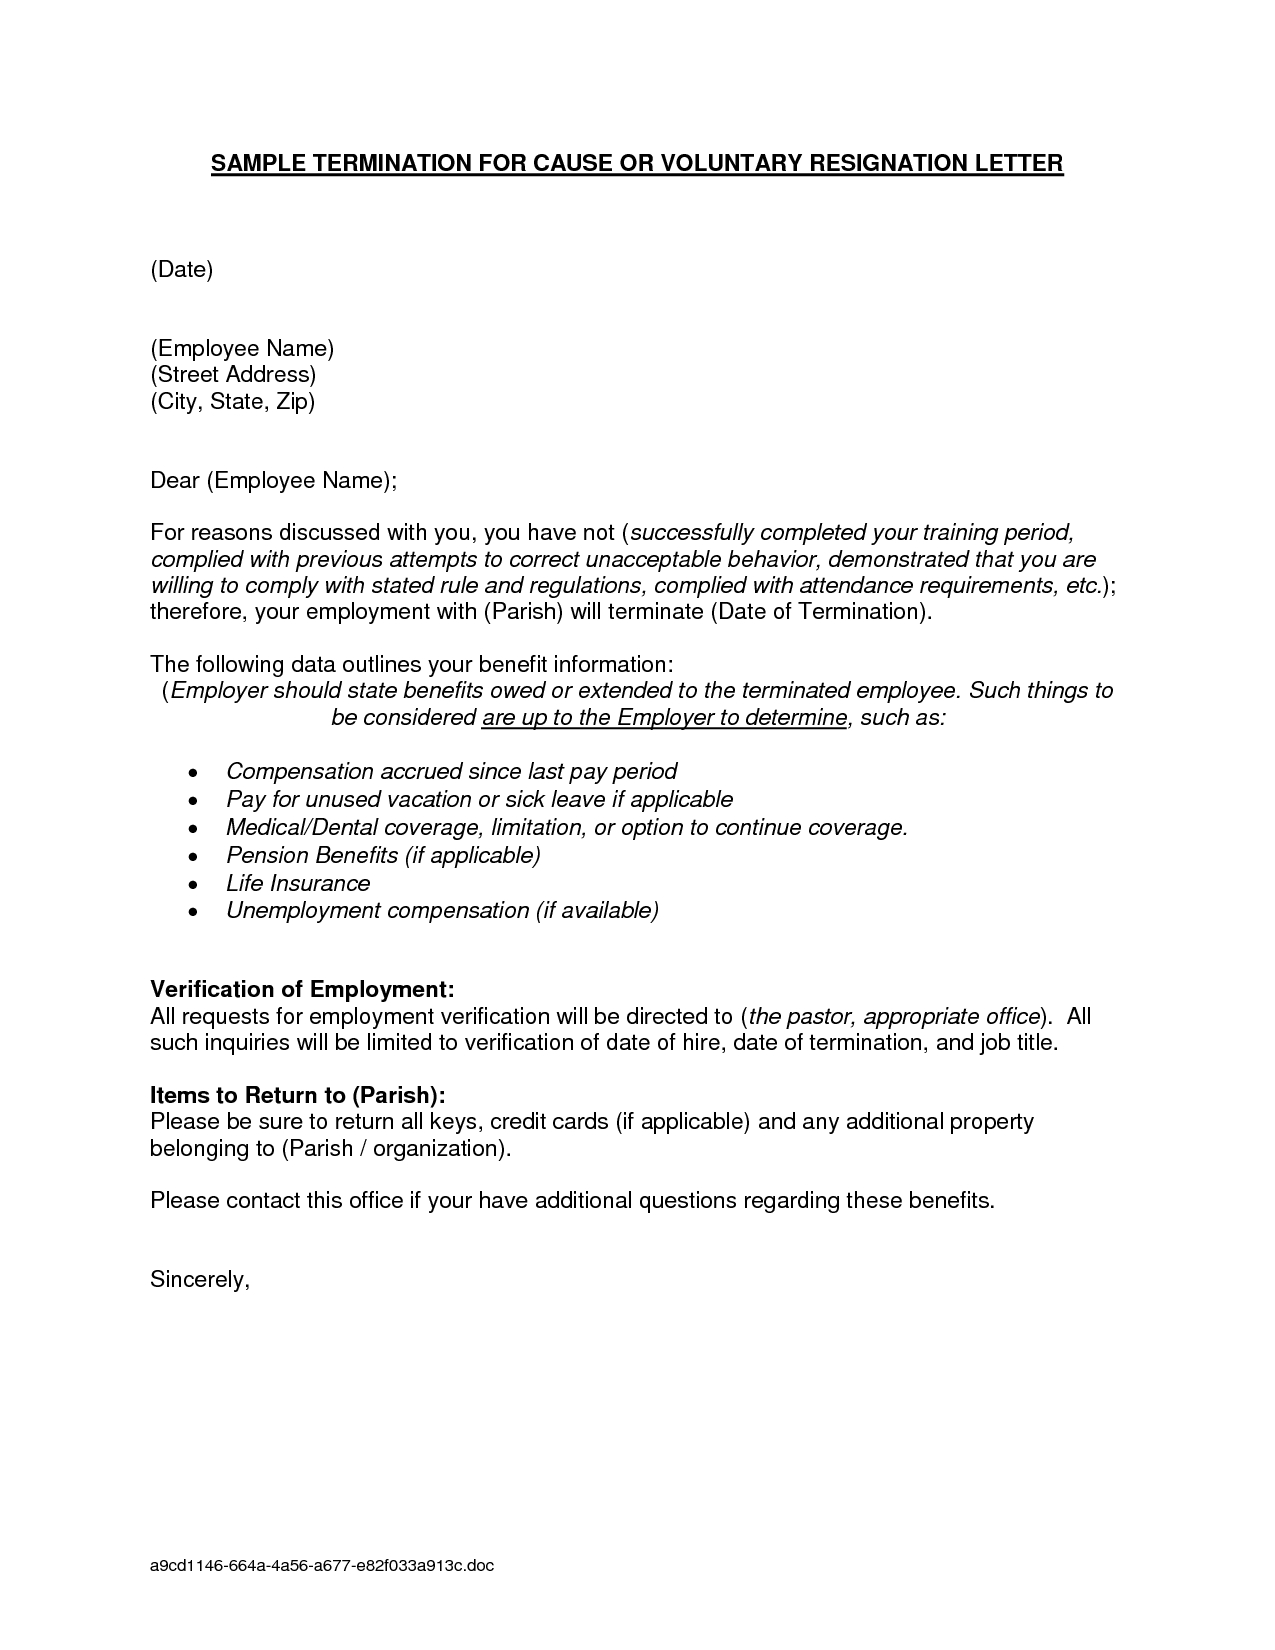 Probation Termination Letter Template - Medical Resignation Letter Sample Due Illness Example Icover